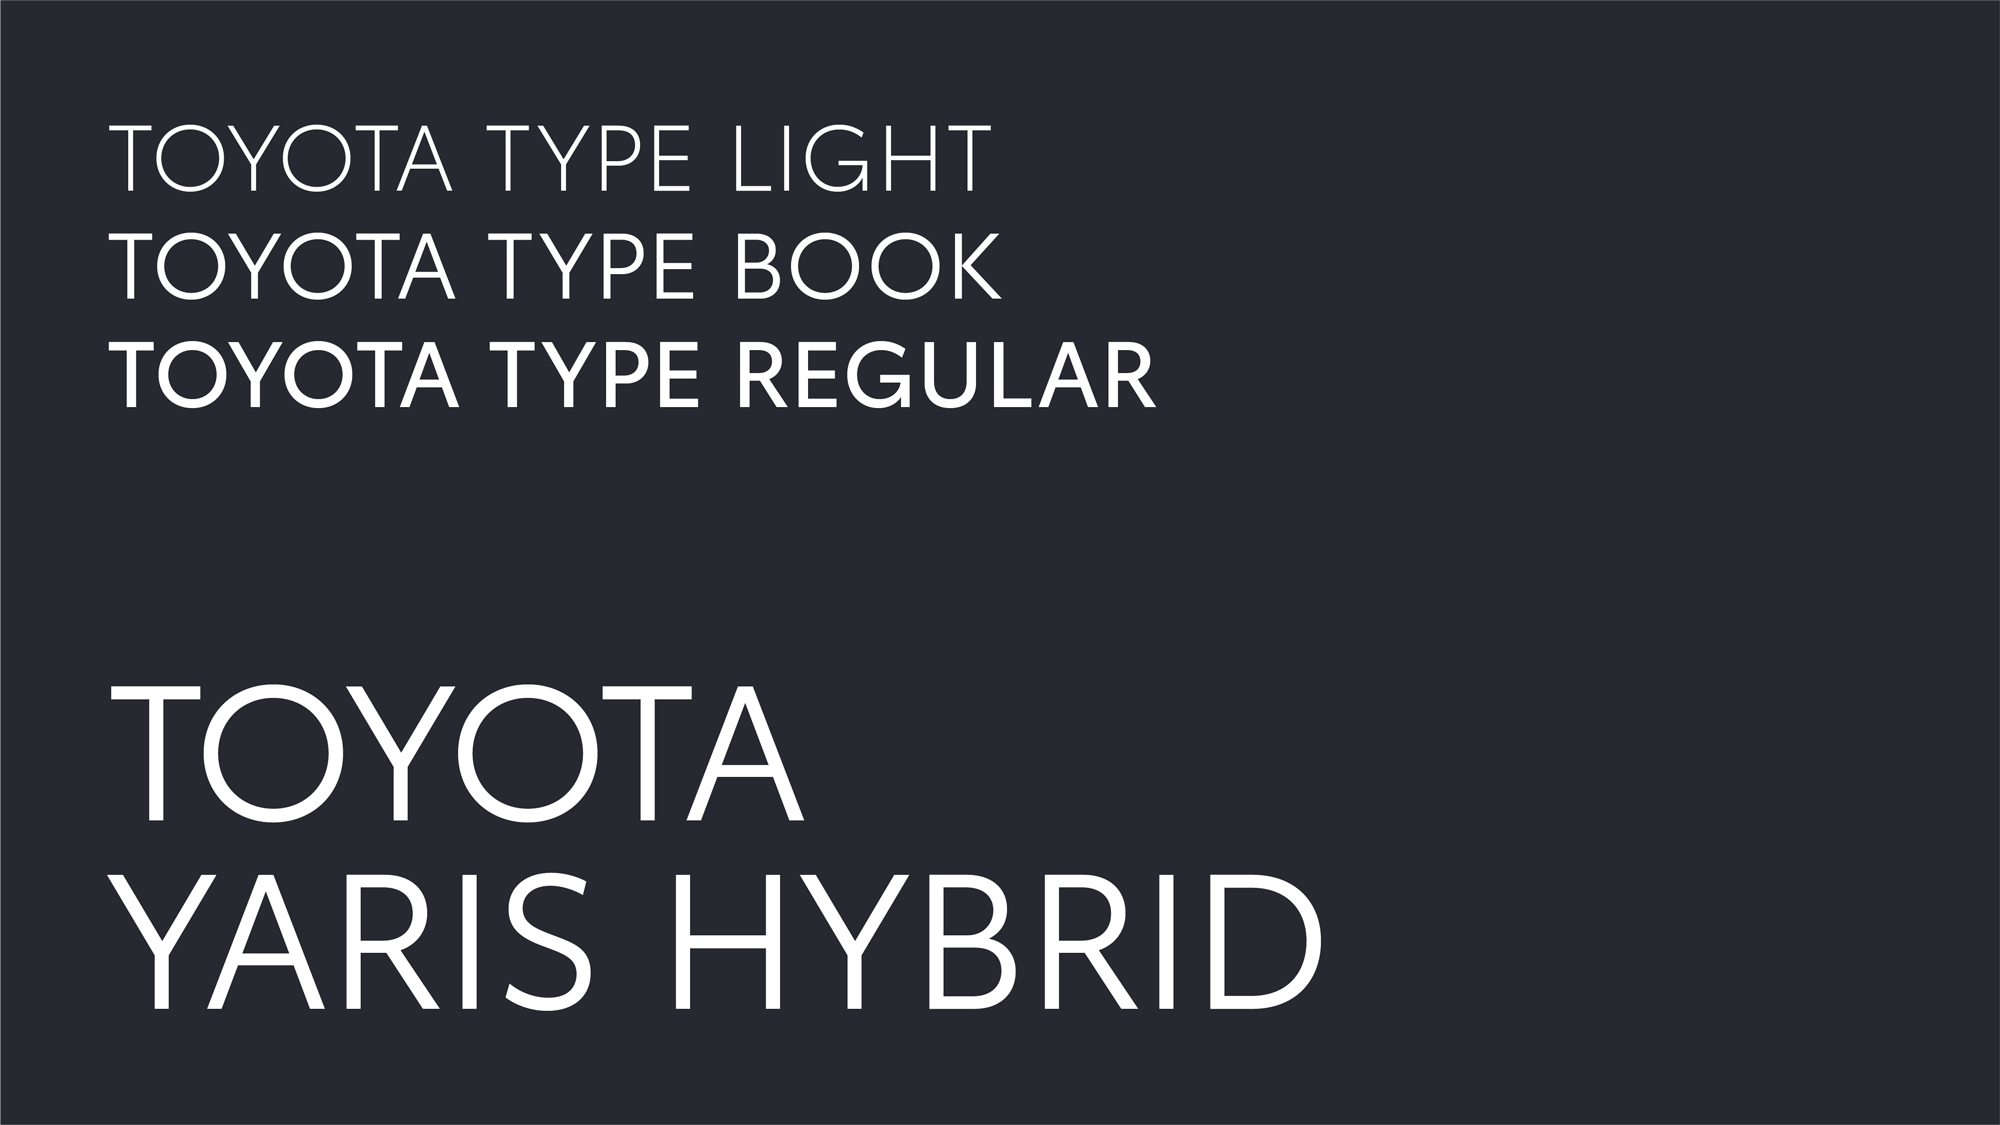 New Logo and Identity for Toyota Europe by The&Partnership